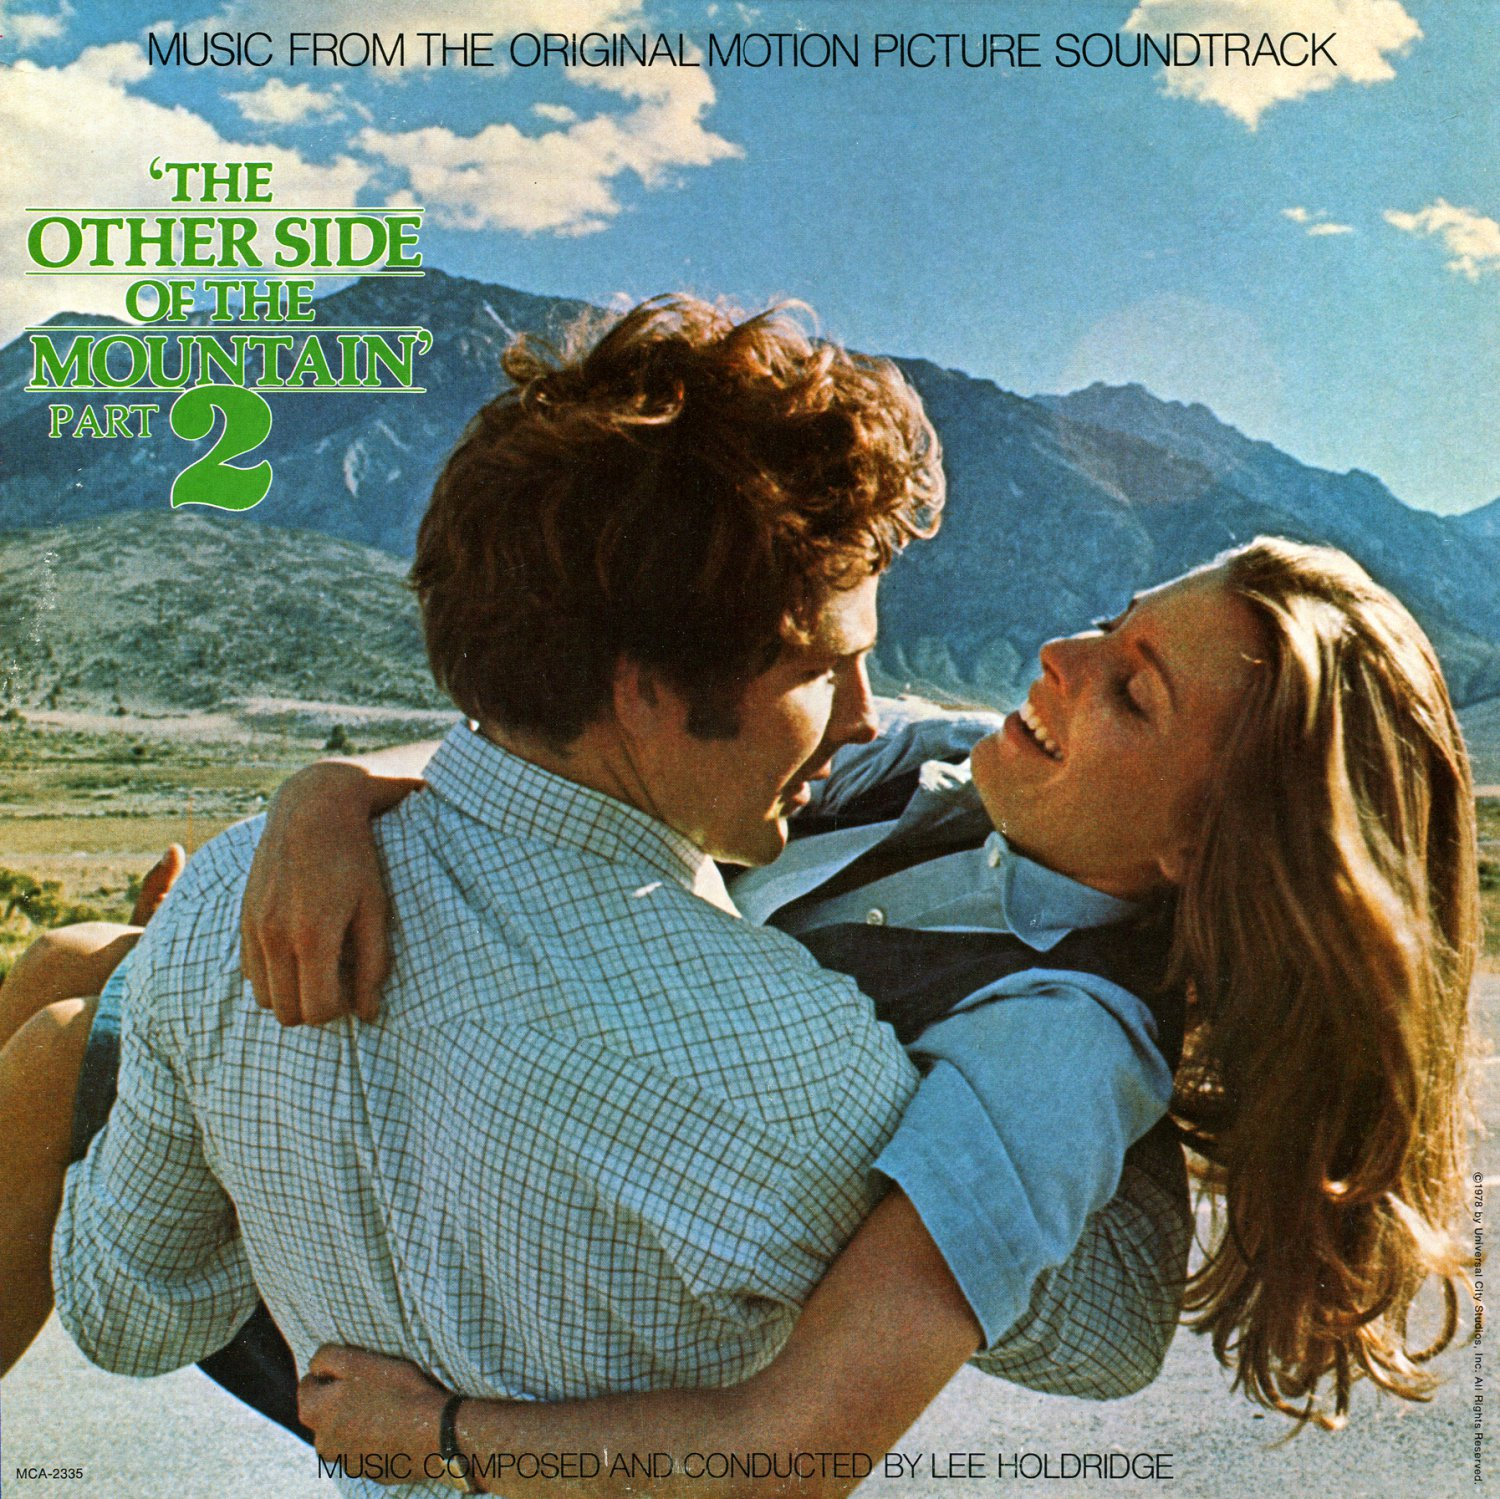 The Other Side Of The Mountain Part 2 - Original Soundtrack, Lee Holdridge OST LP/CD